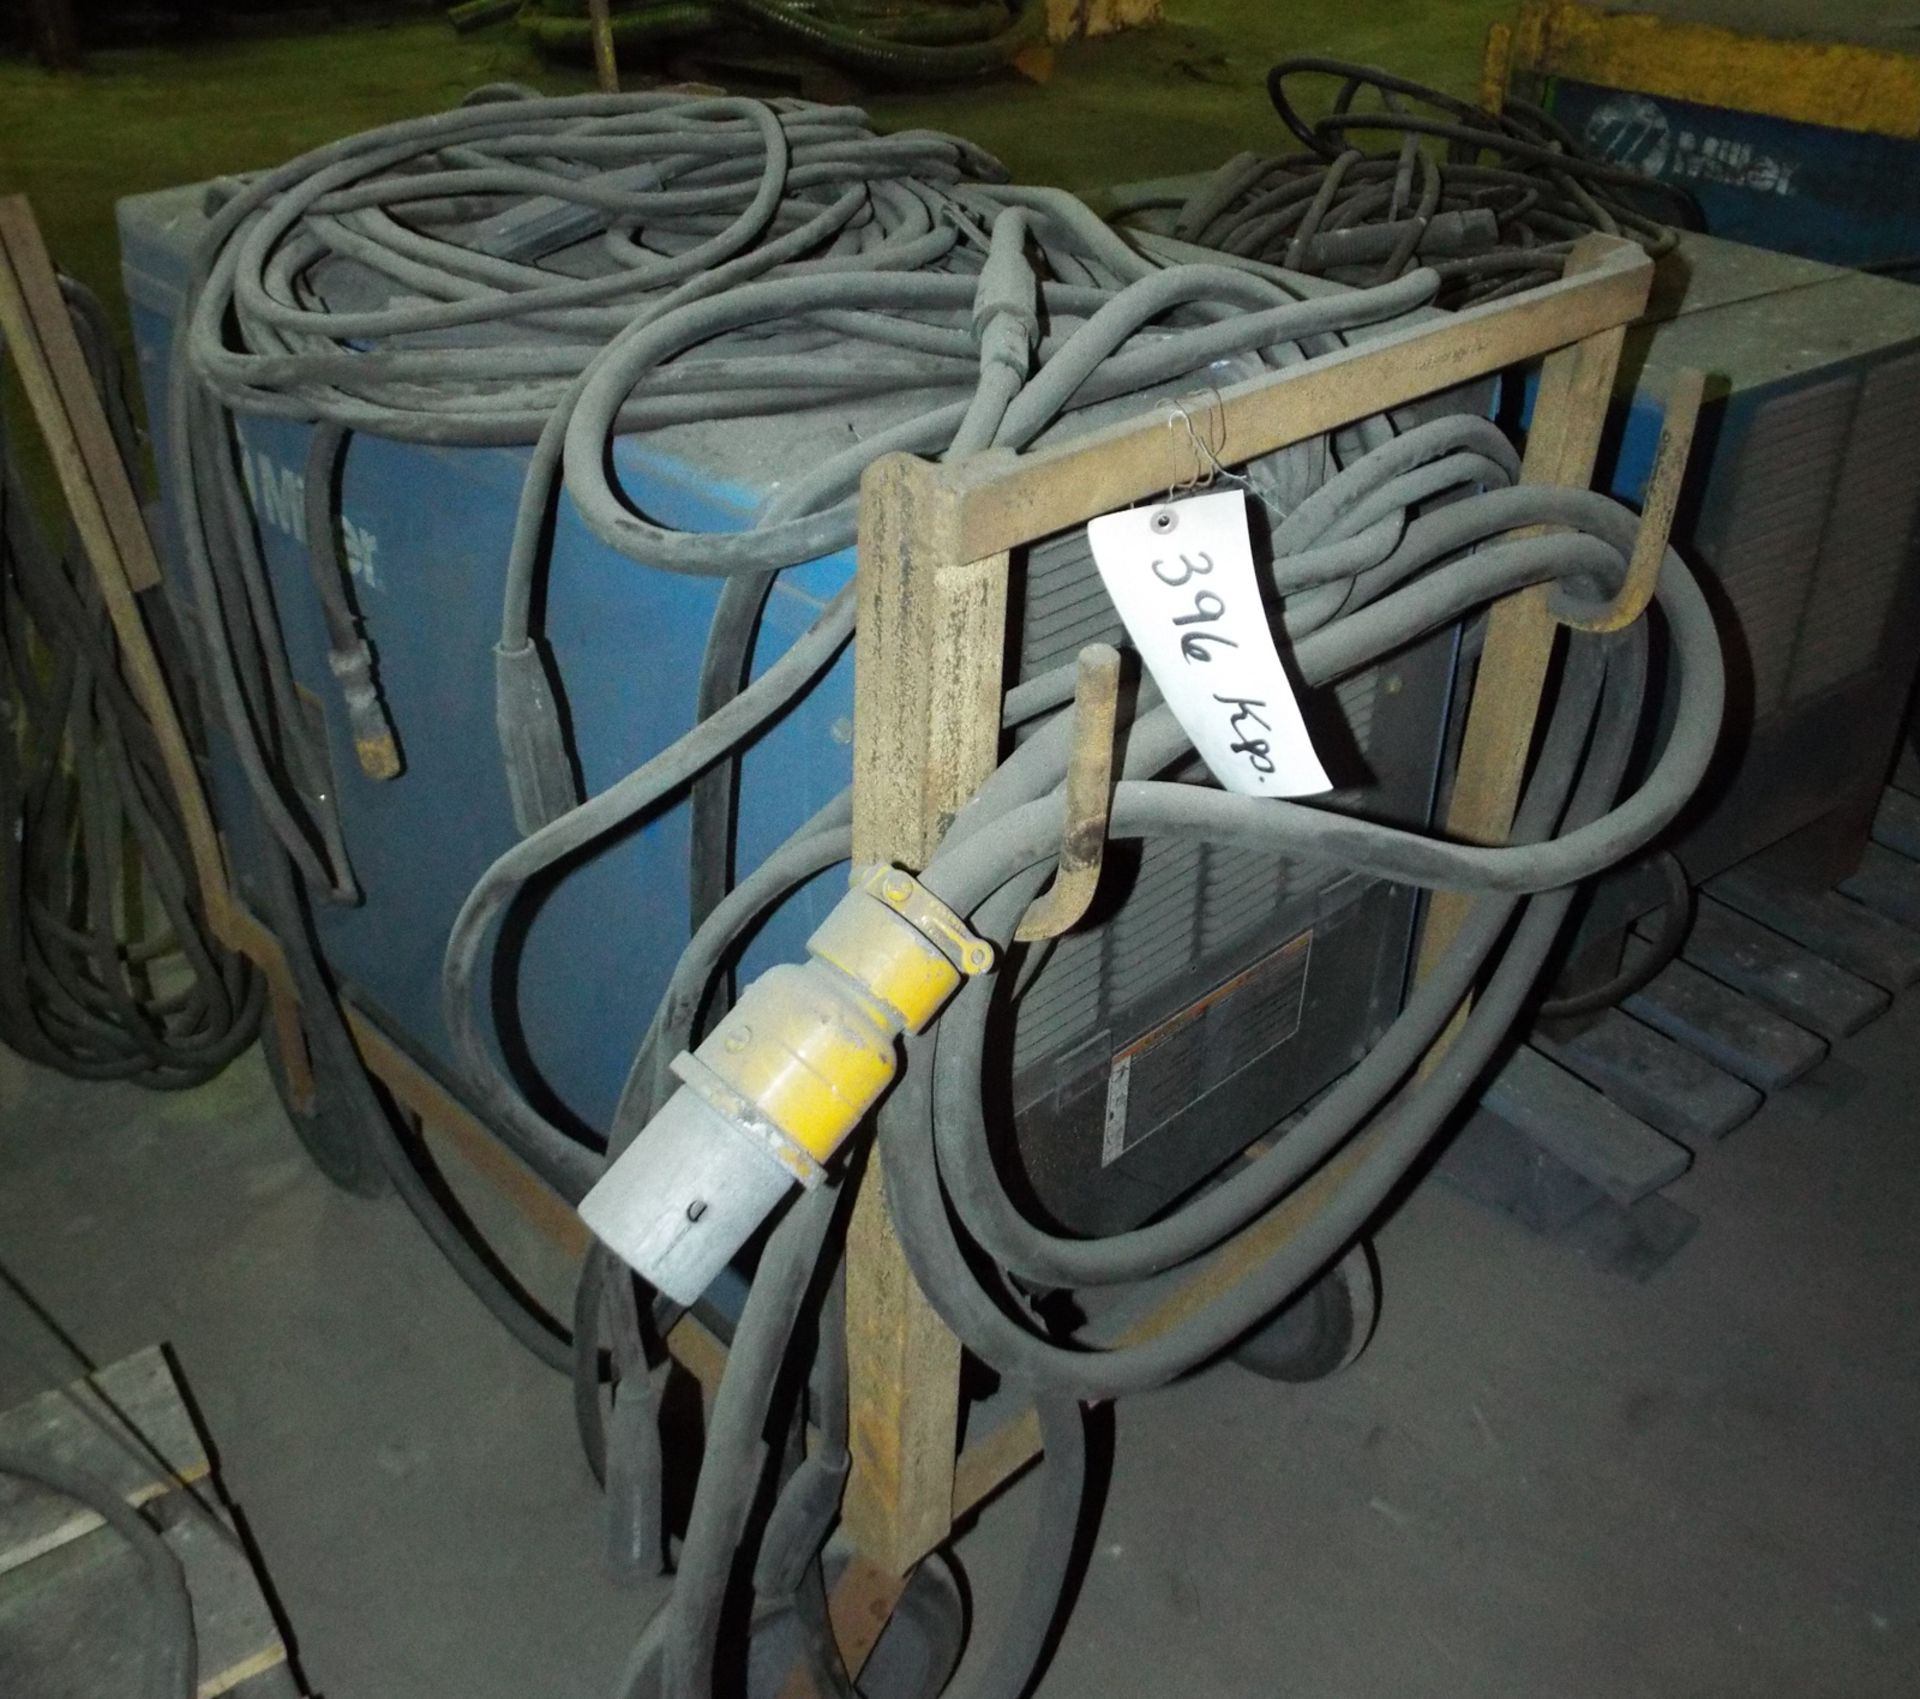 Lot 2 - MILLER DIMENSION 652 DIGITAL WELDING POWER SOURCE WITH CABLES, S/N: MB130038U